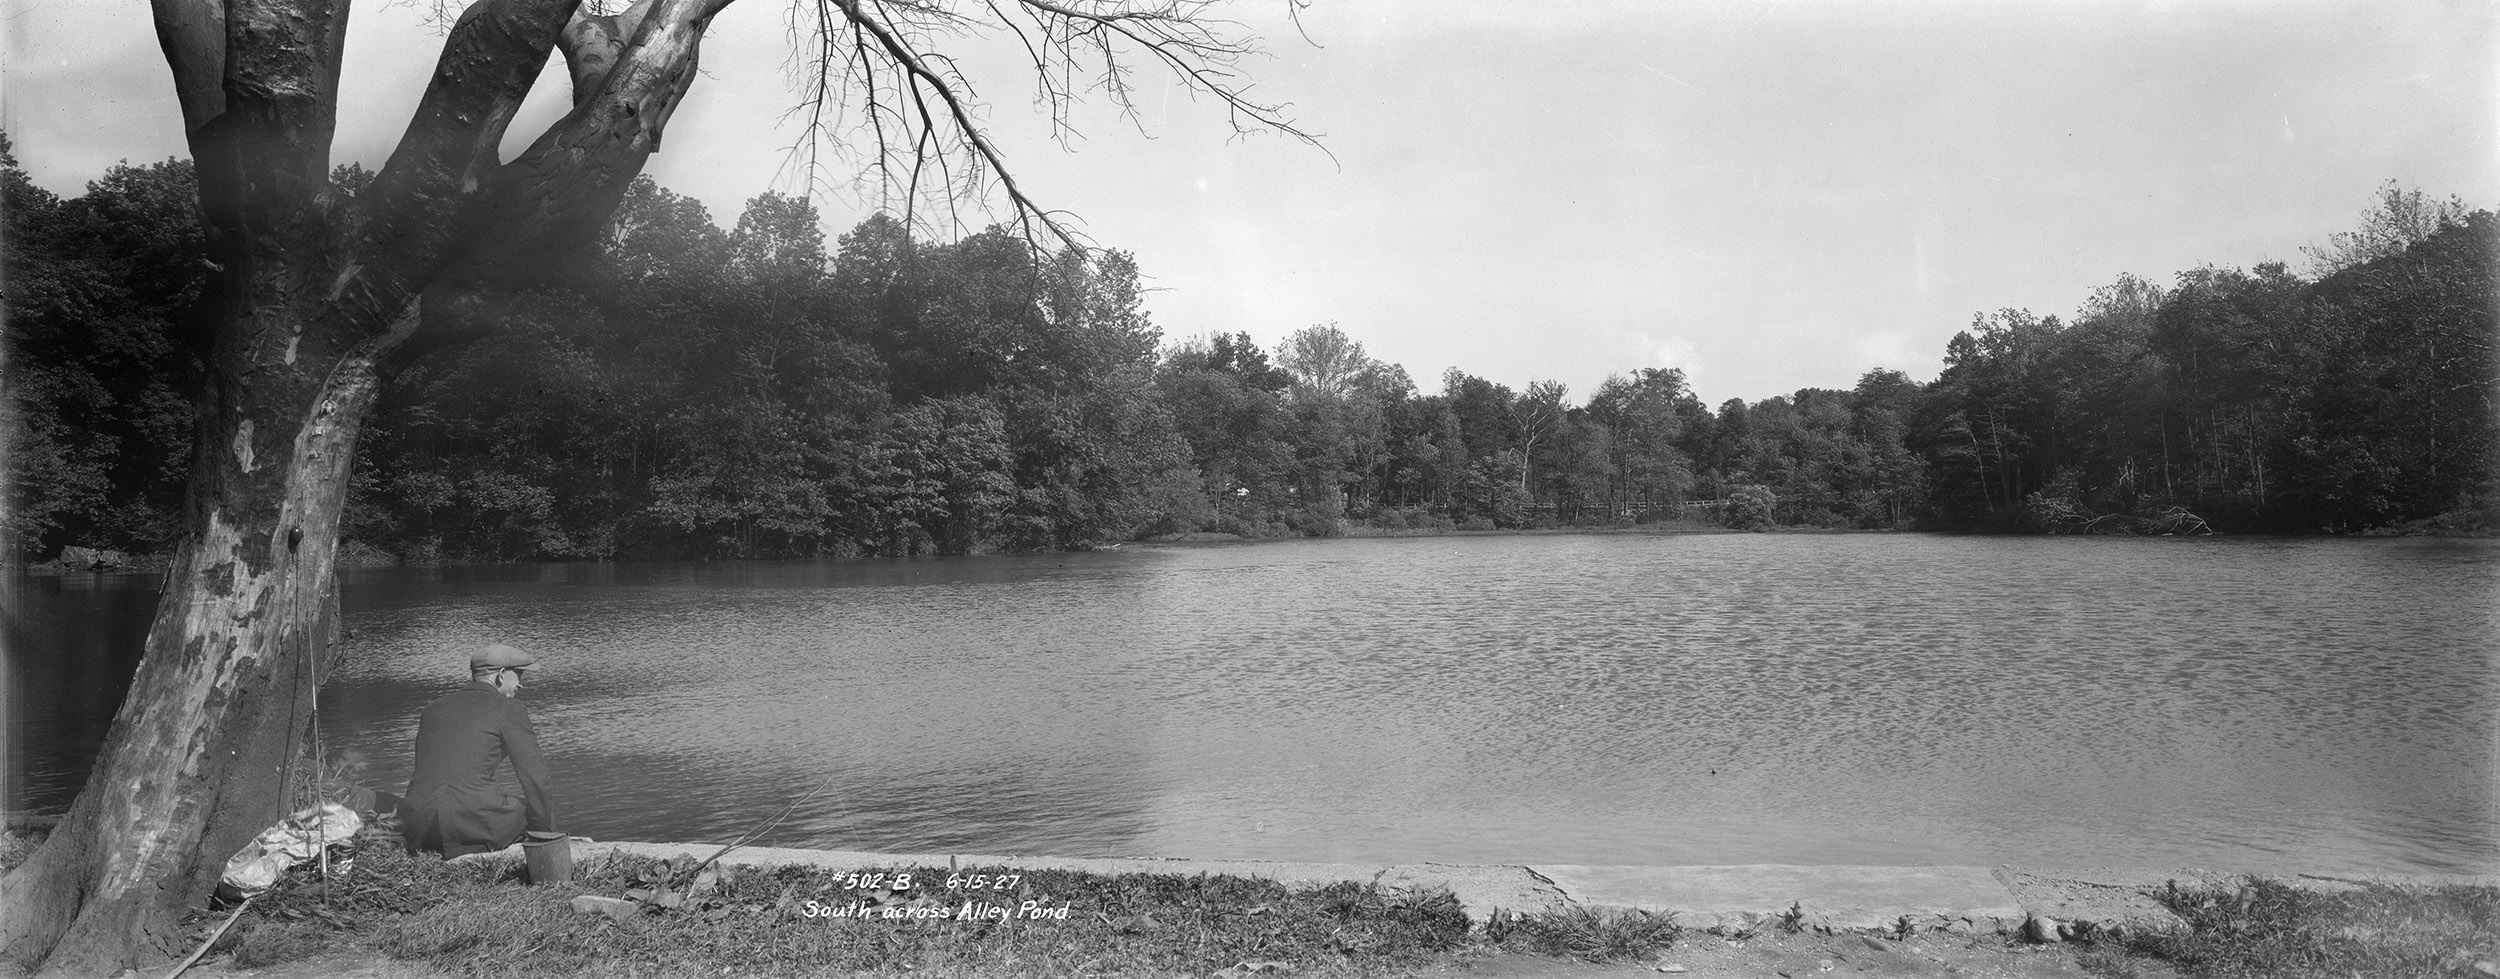 Alley Pond, Queens, June 15, 1927. Borough President Queens Collection, NYC Municipal Archives.